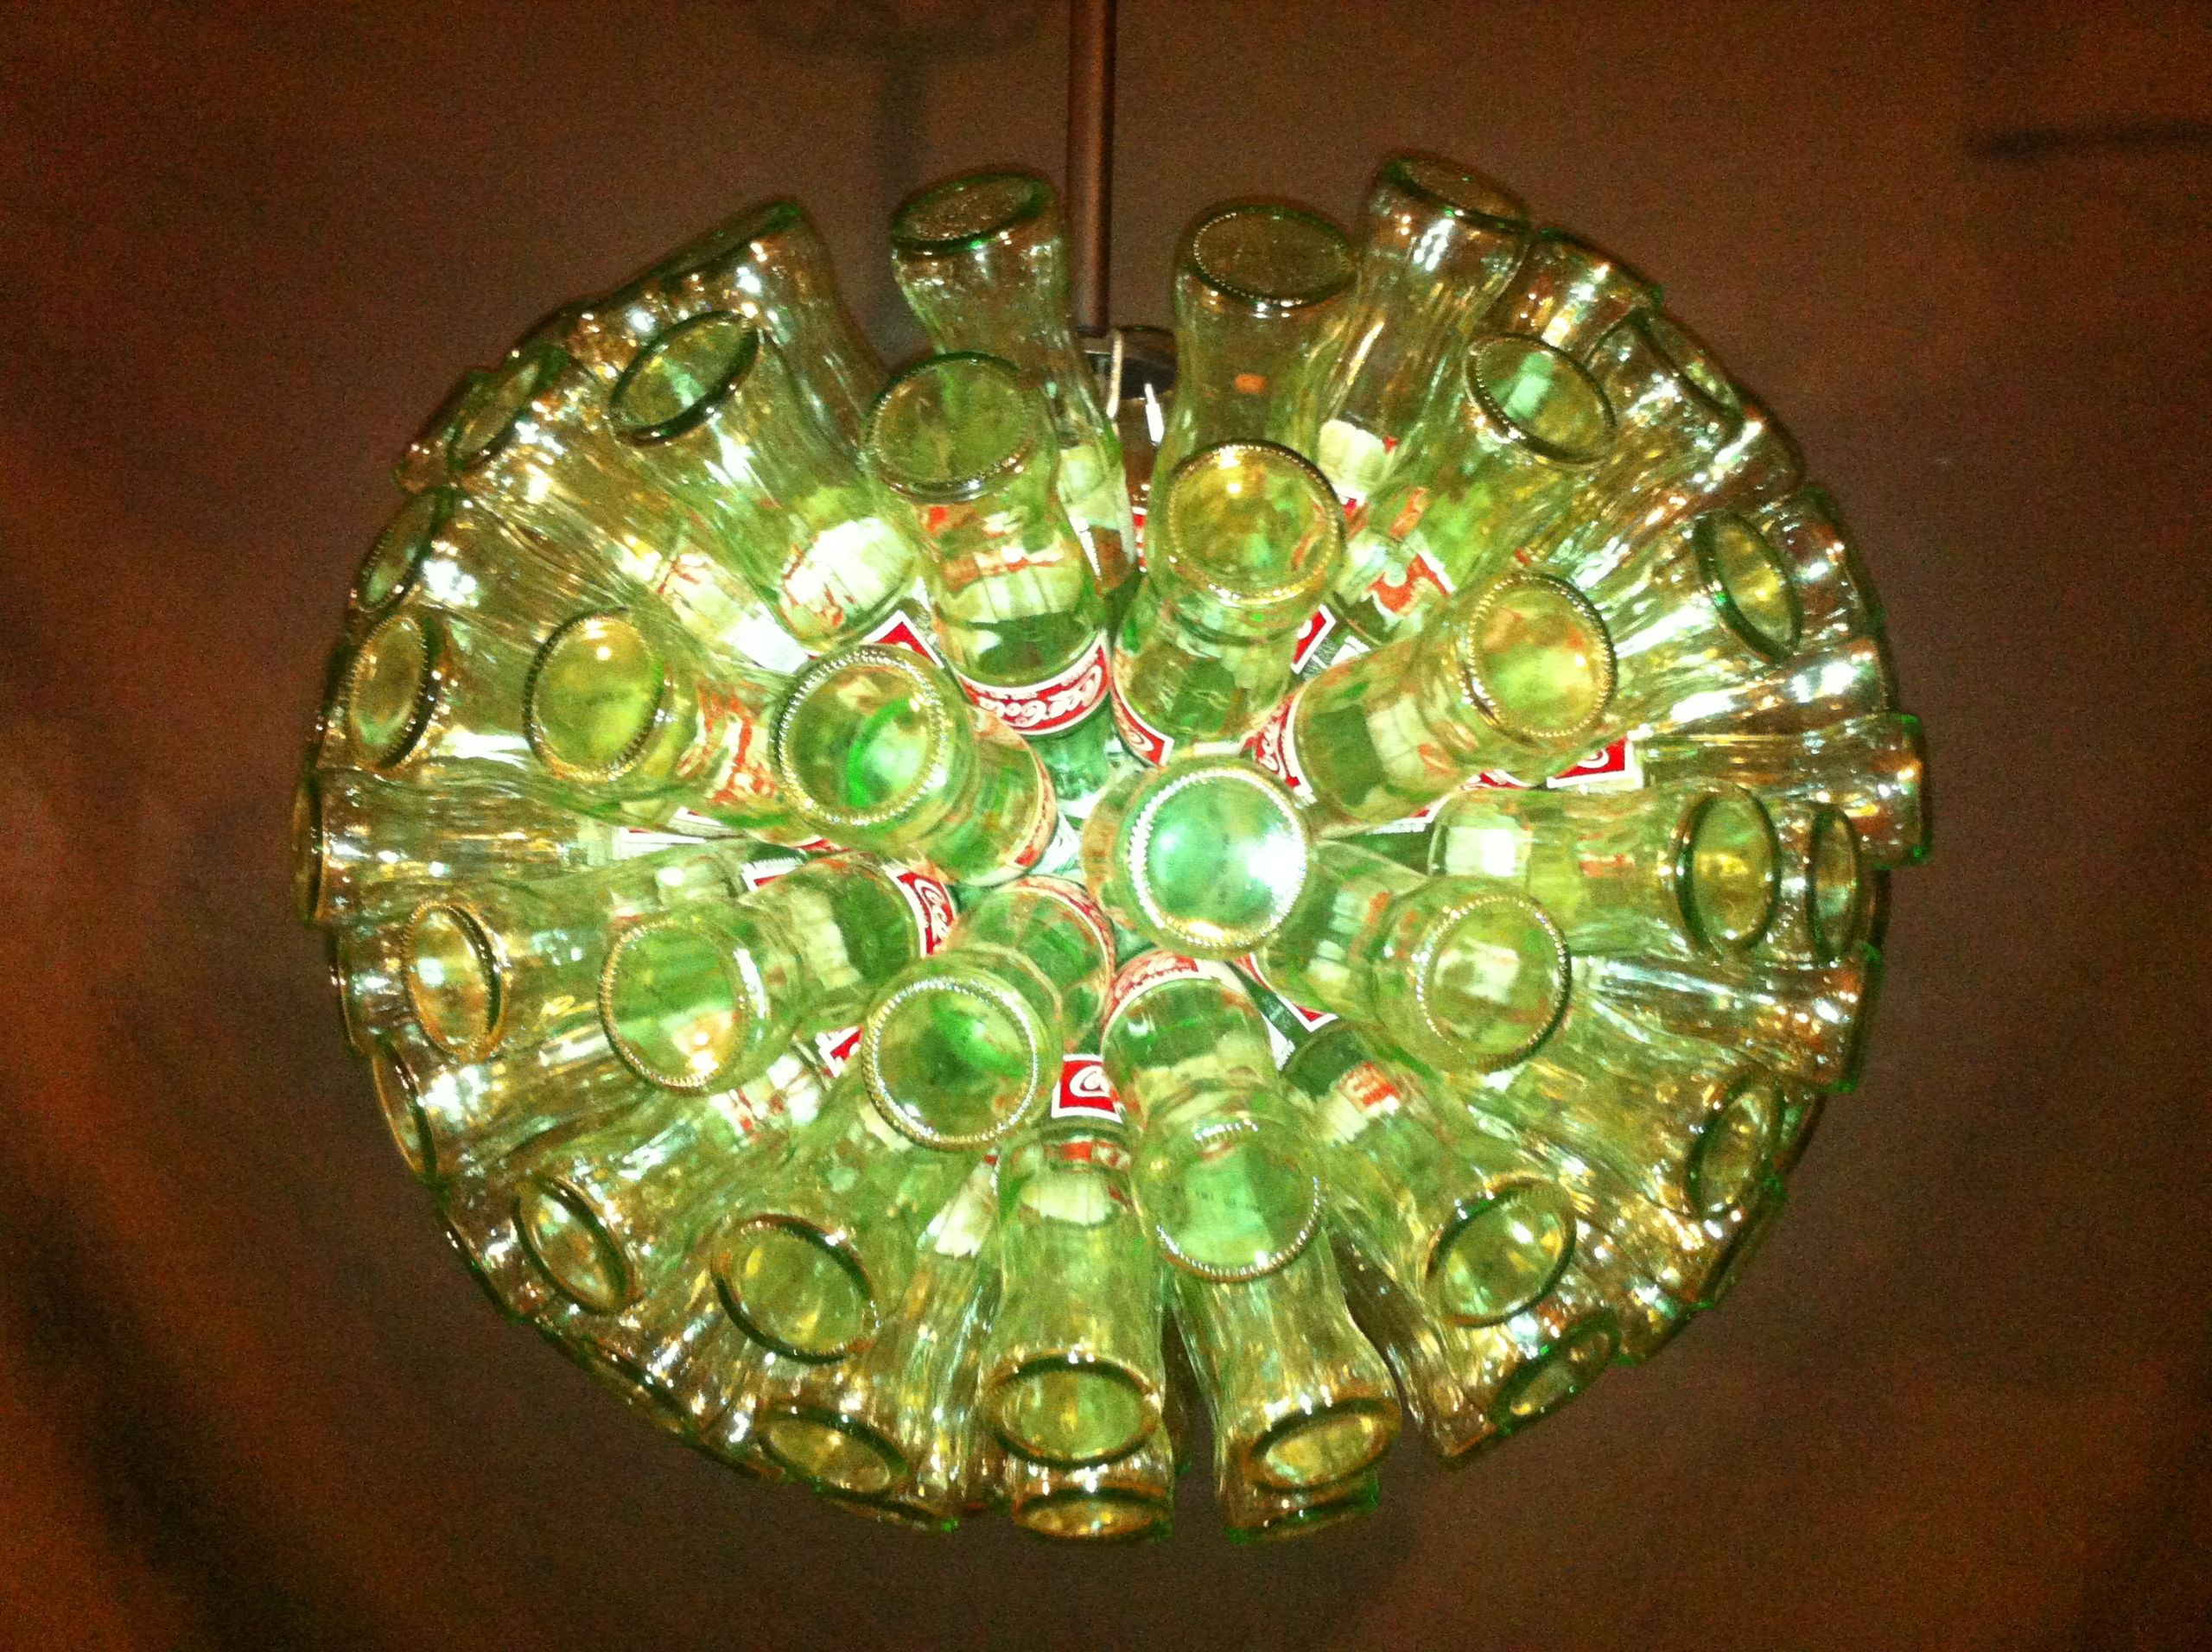 Coca cola bottle chandelier coke photo from fanpop recycled coca cola bottle chandelier coke photo from fanpop arubaitofo Image collections